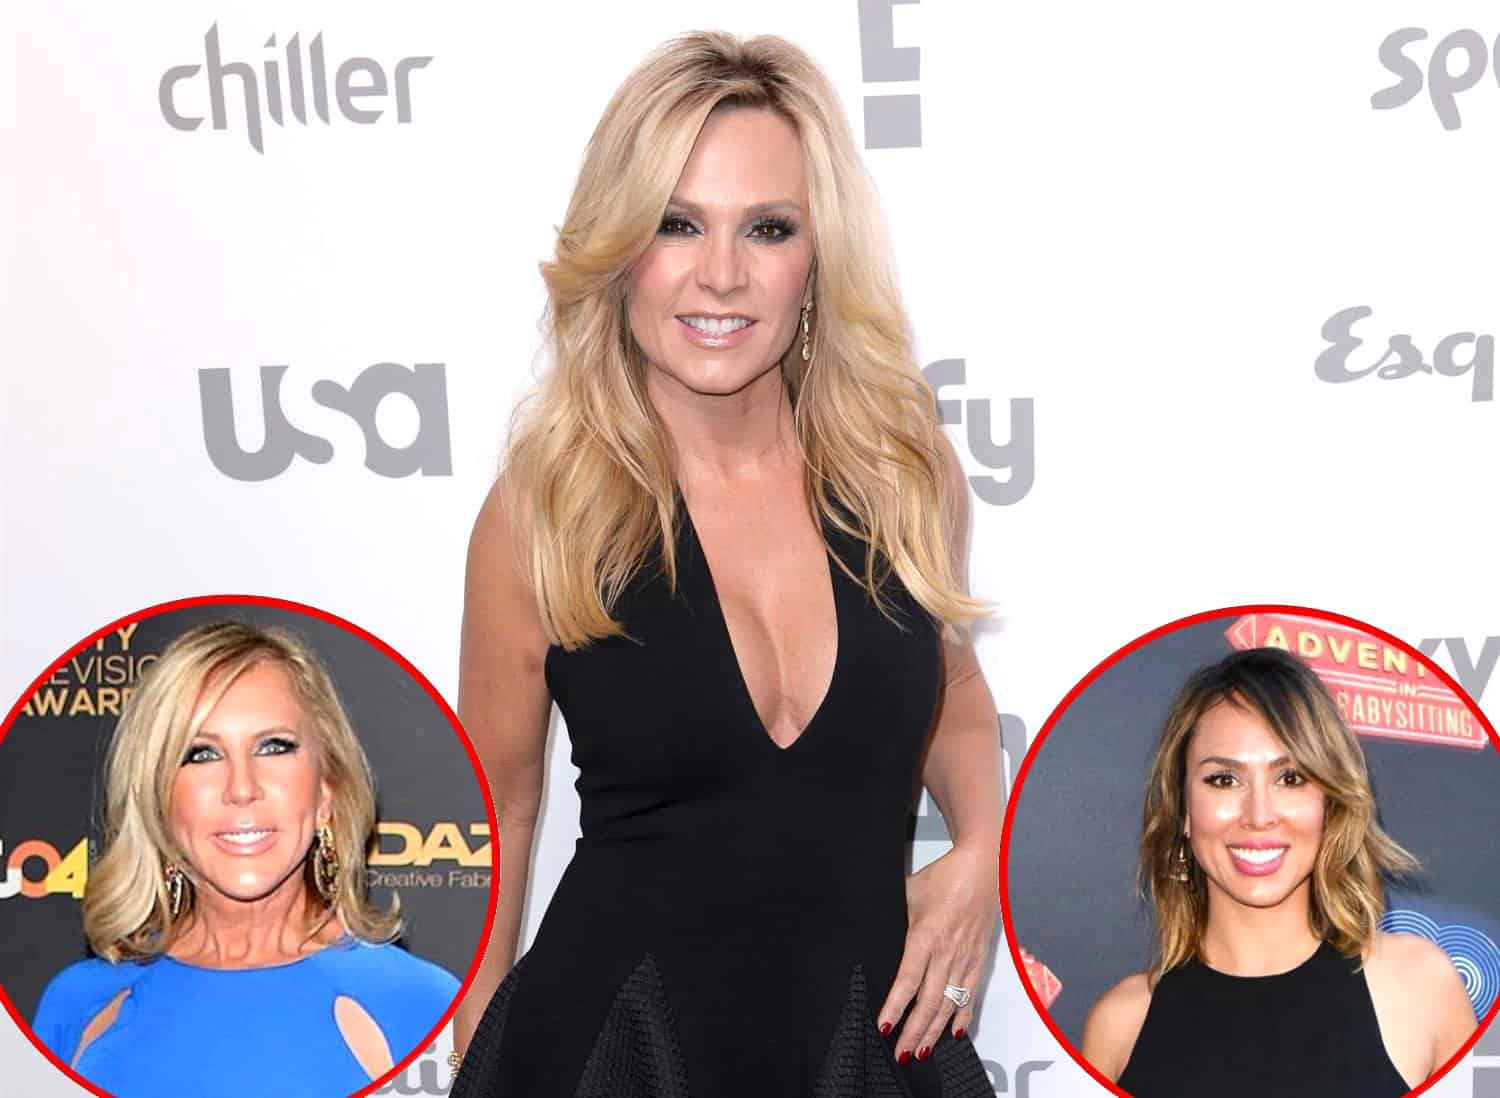 RHOC Tamra Judge talks Vicki Gunvalson and Kelly Dodd